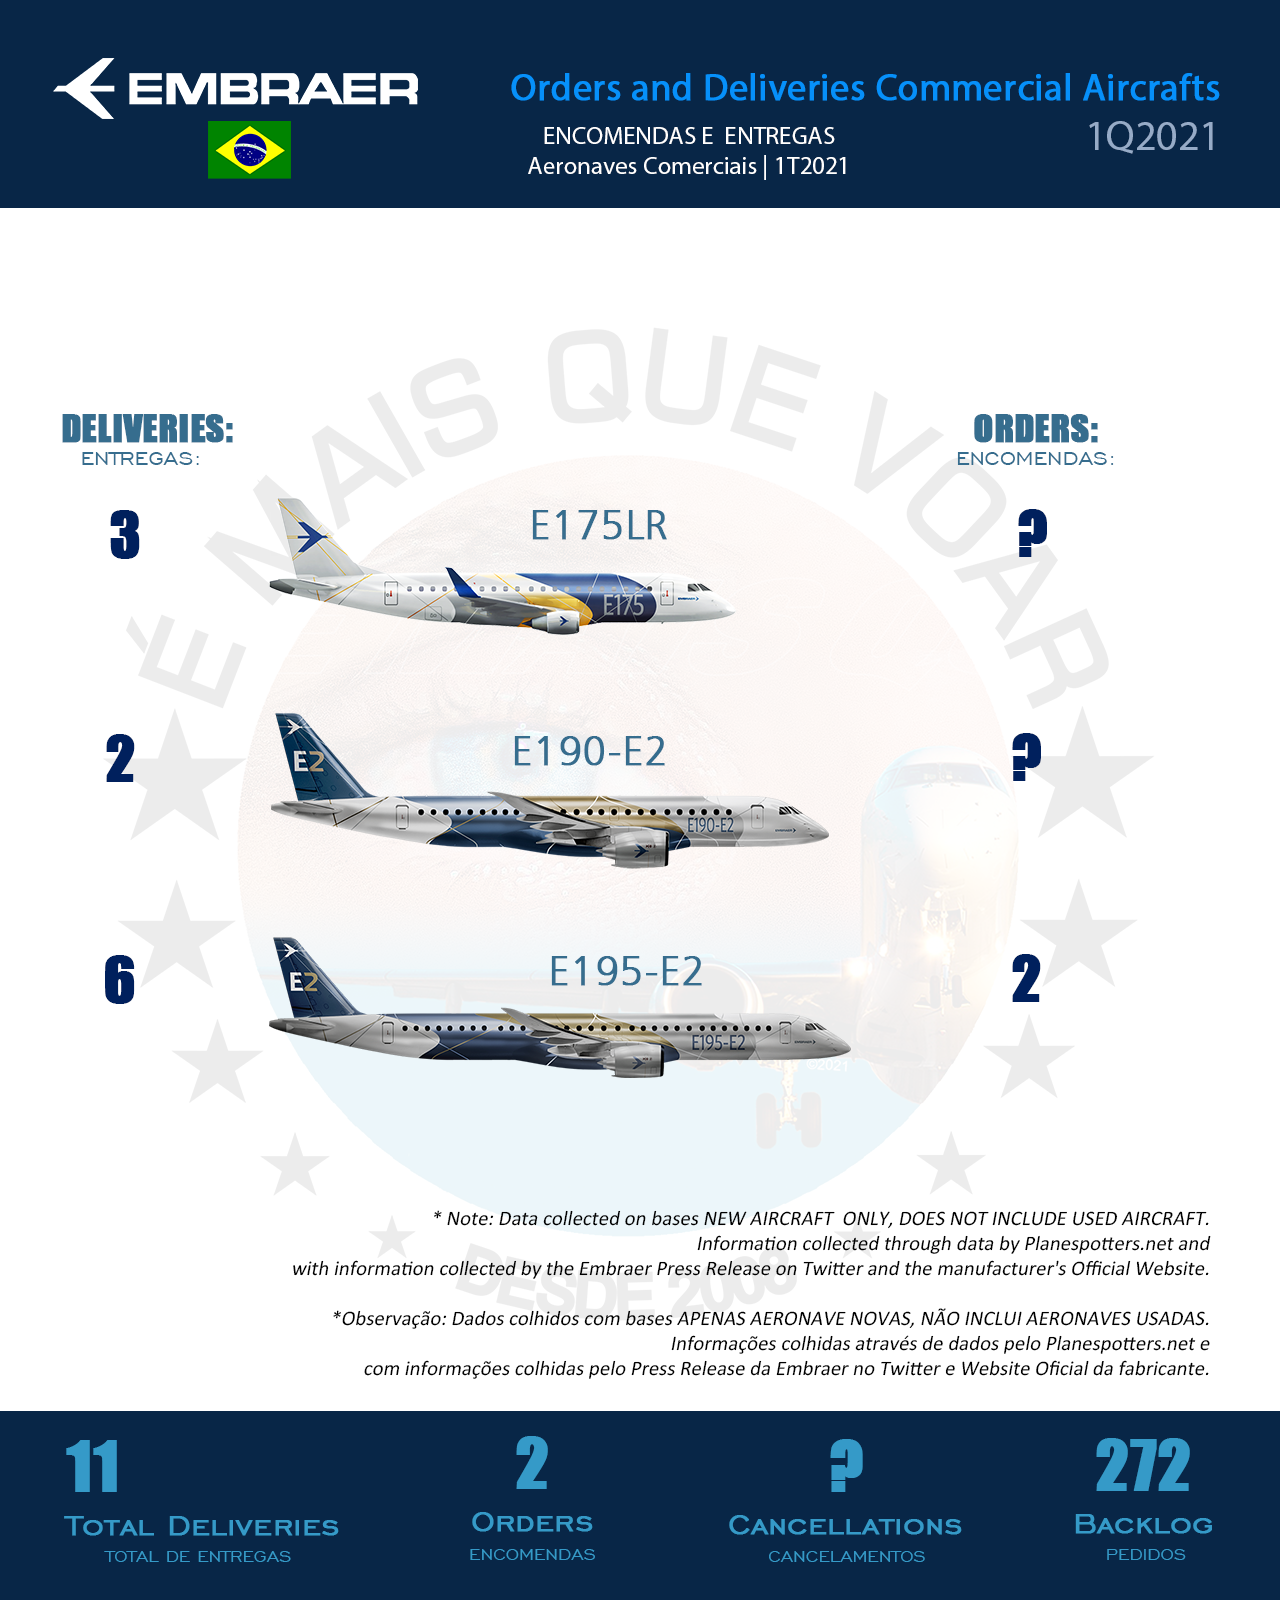 EMBRAER: TOTAL DELIVERIES AND ORDERS 1Q2021   MORE THAN FLY